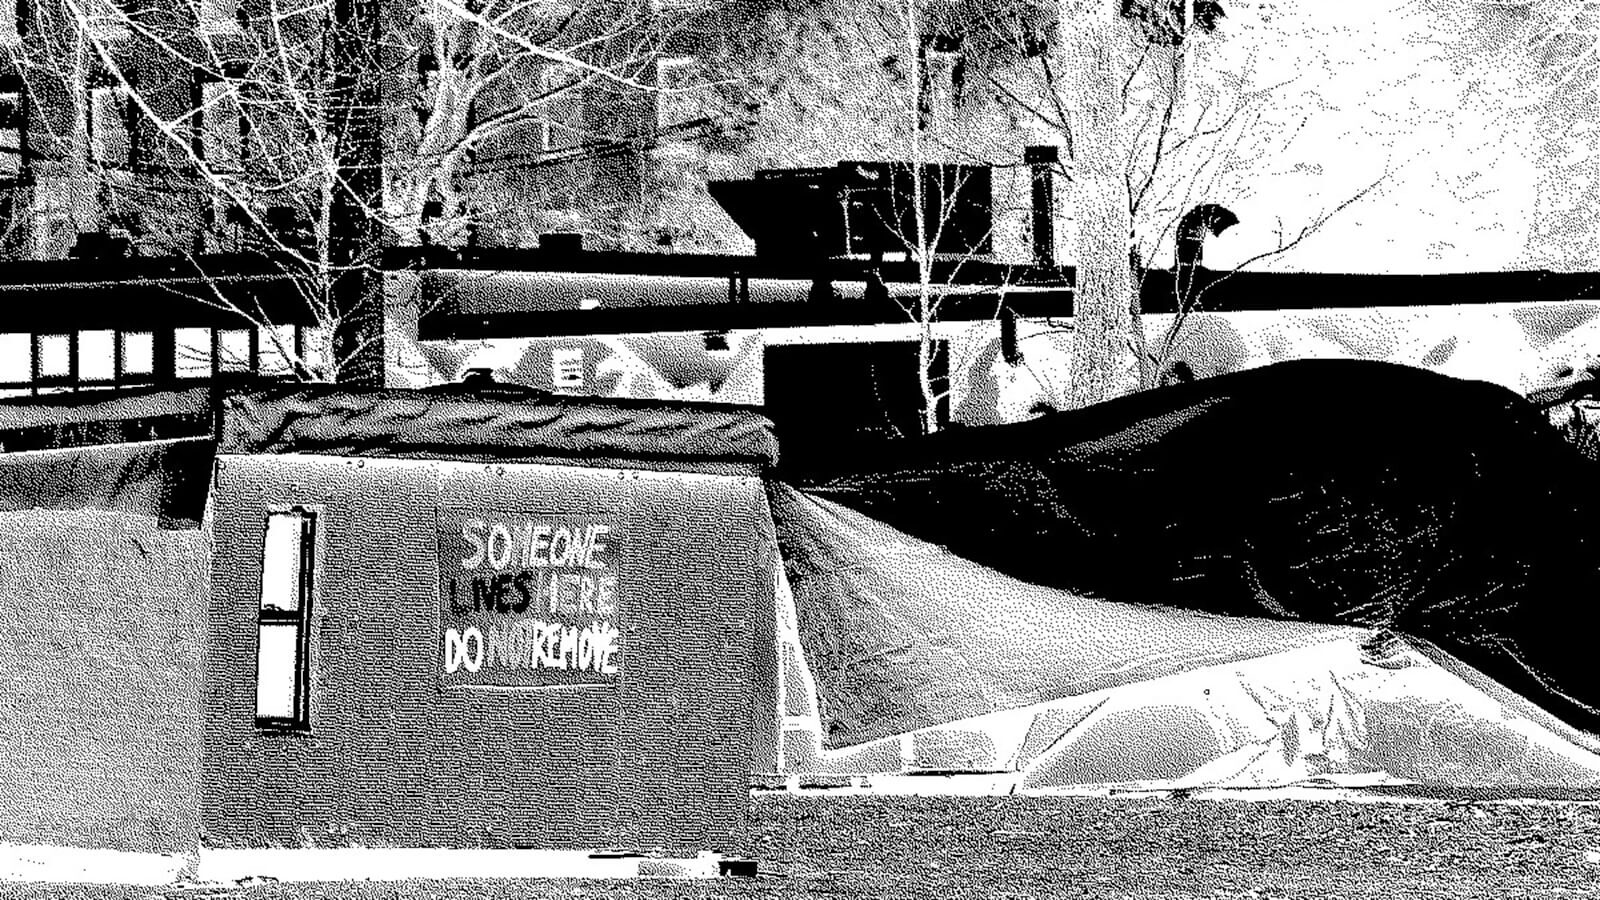 Tent and temporary shelter, with the words: Someone Lives Here Do Not Move written on the side